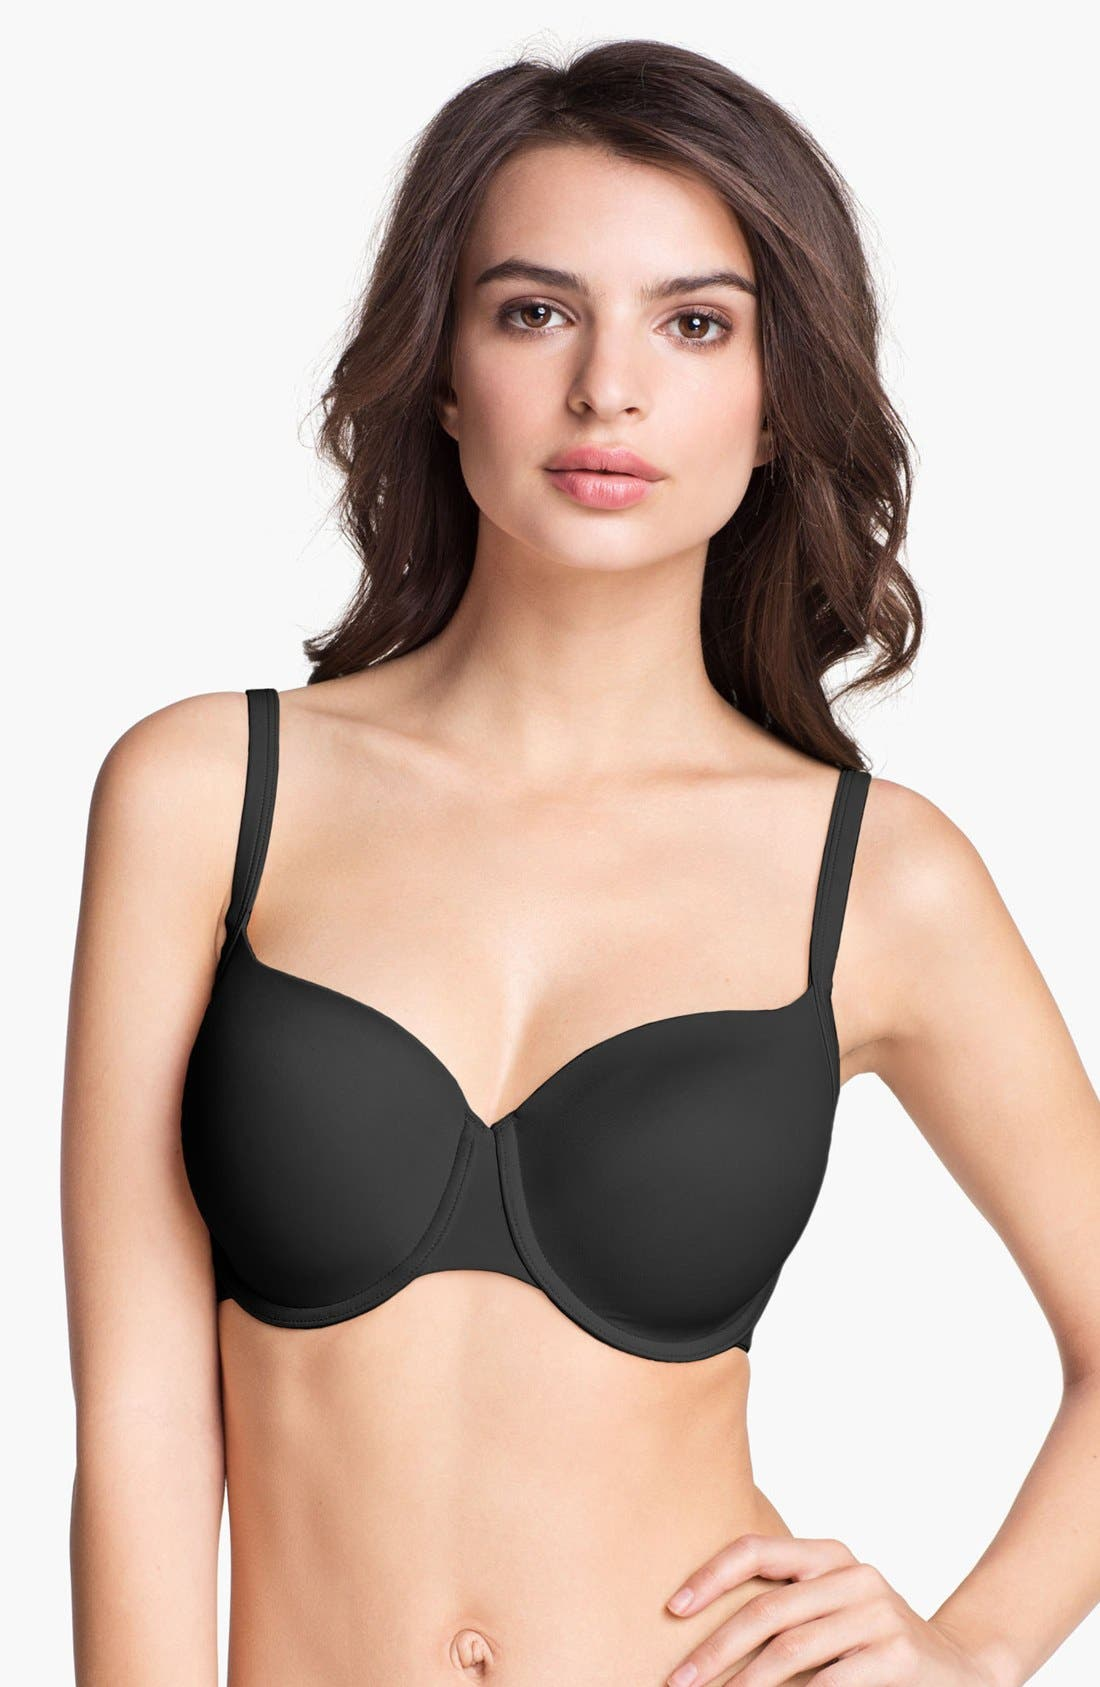 Alternate Image 1 Selected - Panache 'Porcelain' Underwire Bra (DD Cup & Up)